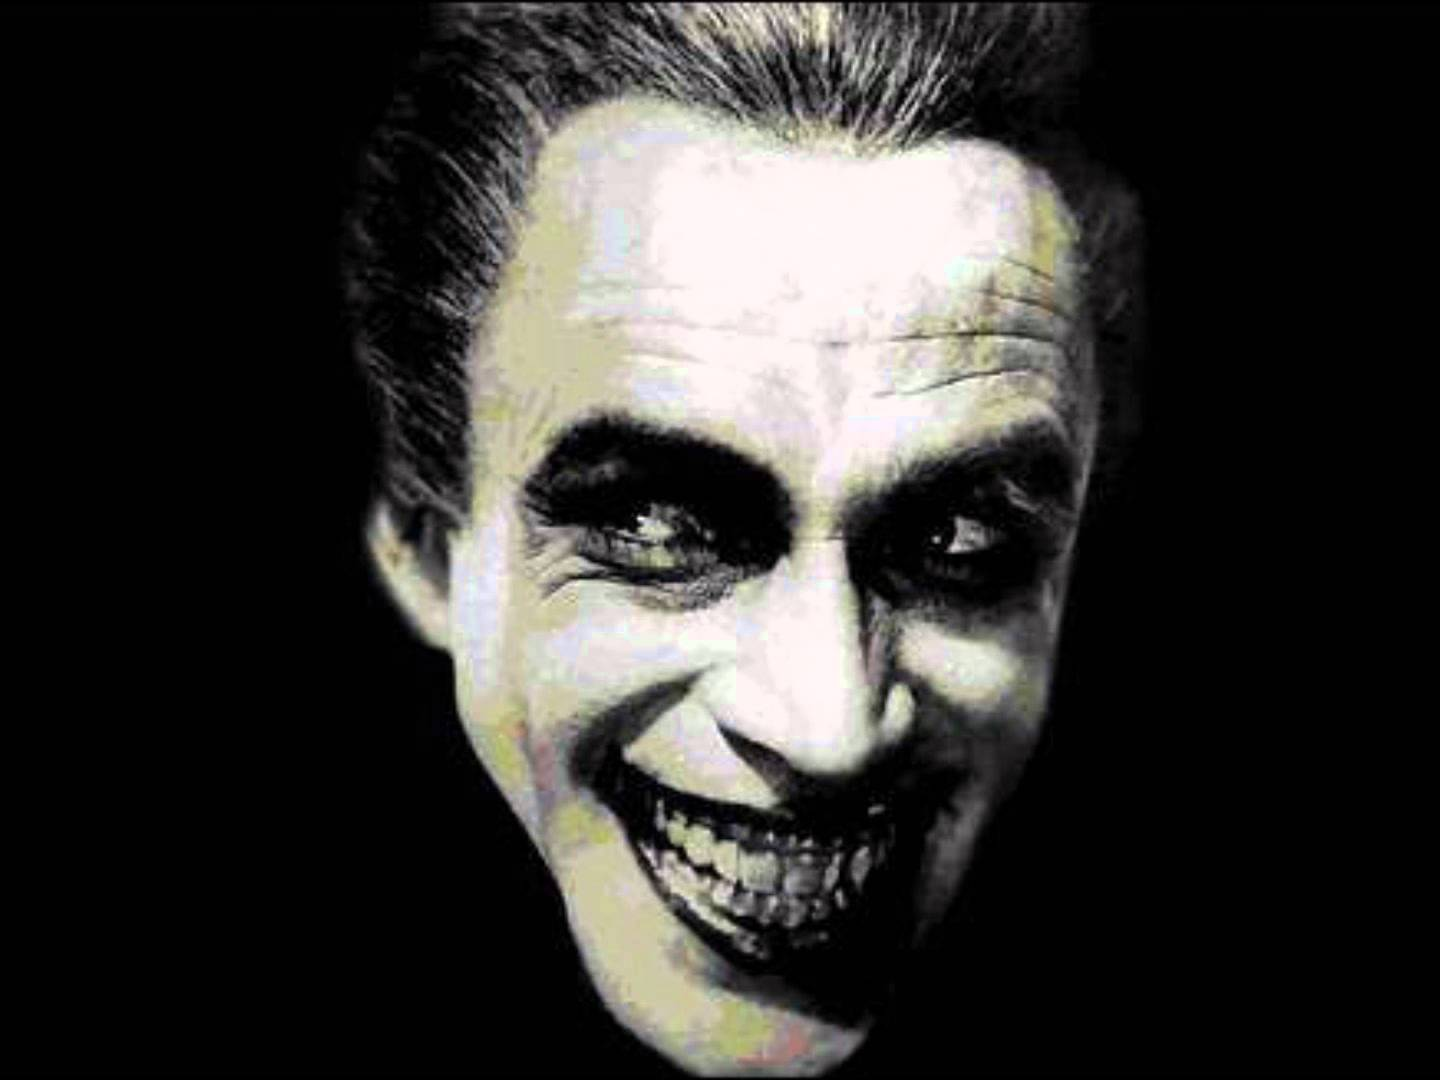 Conrad Veidt as Gwynplaine in The Man Who Laughs (1928)